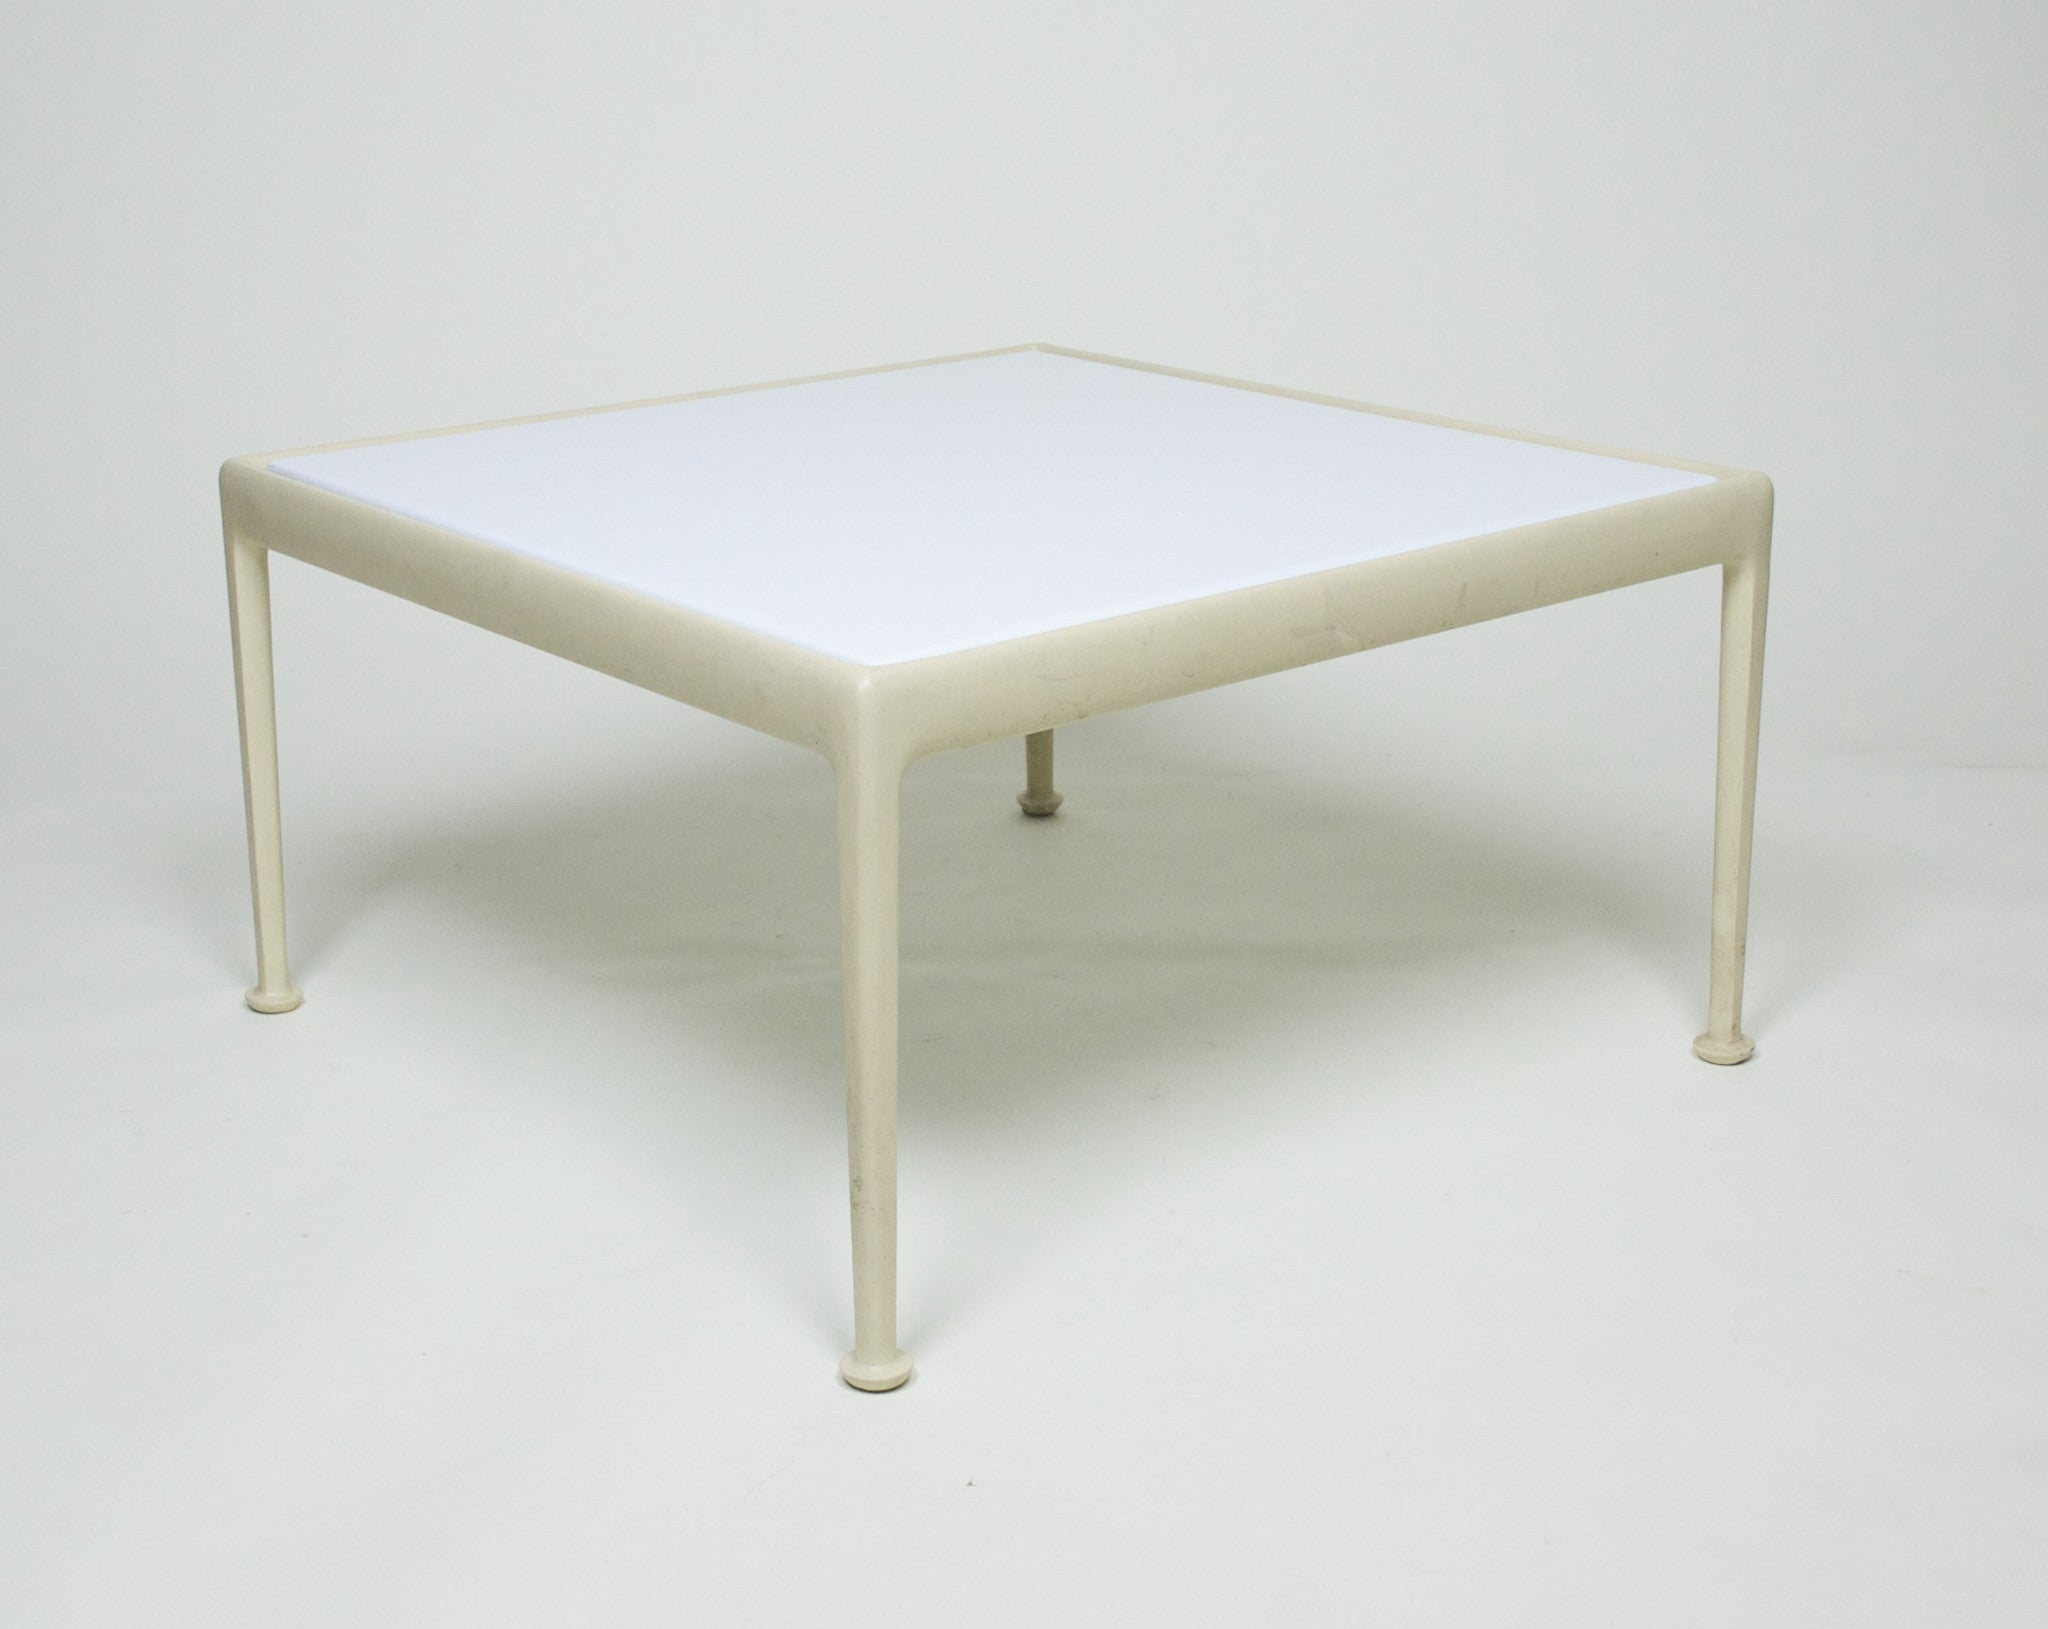 SOLD Knoll Richard Schultz 1966 Collection Square Coffee Table New Old Stock